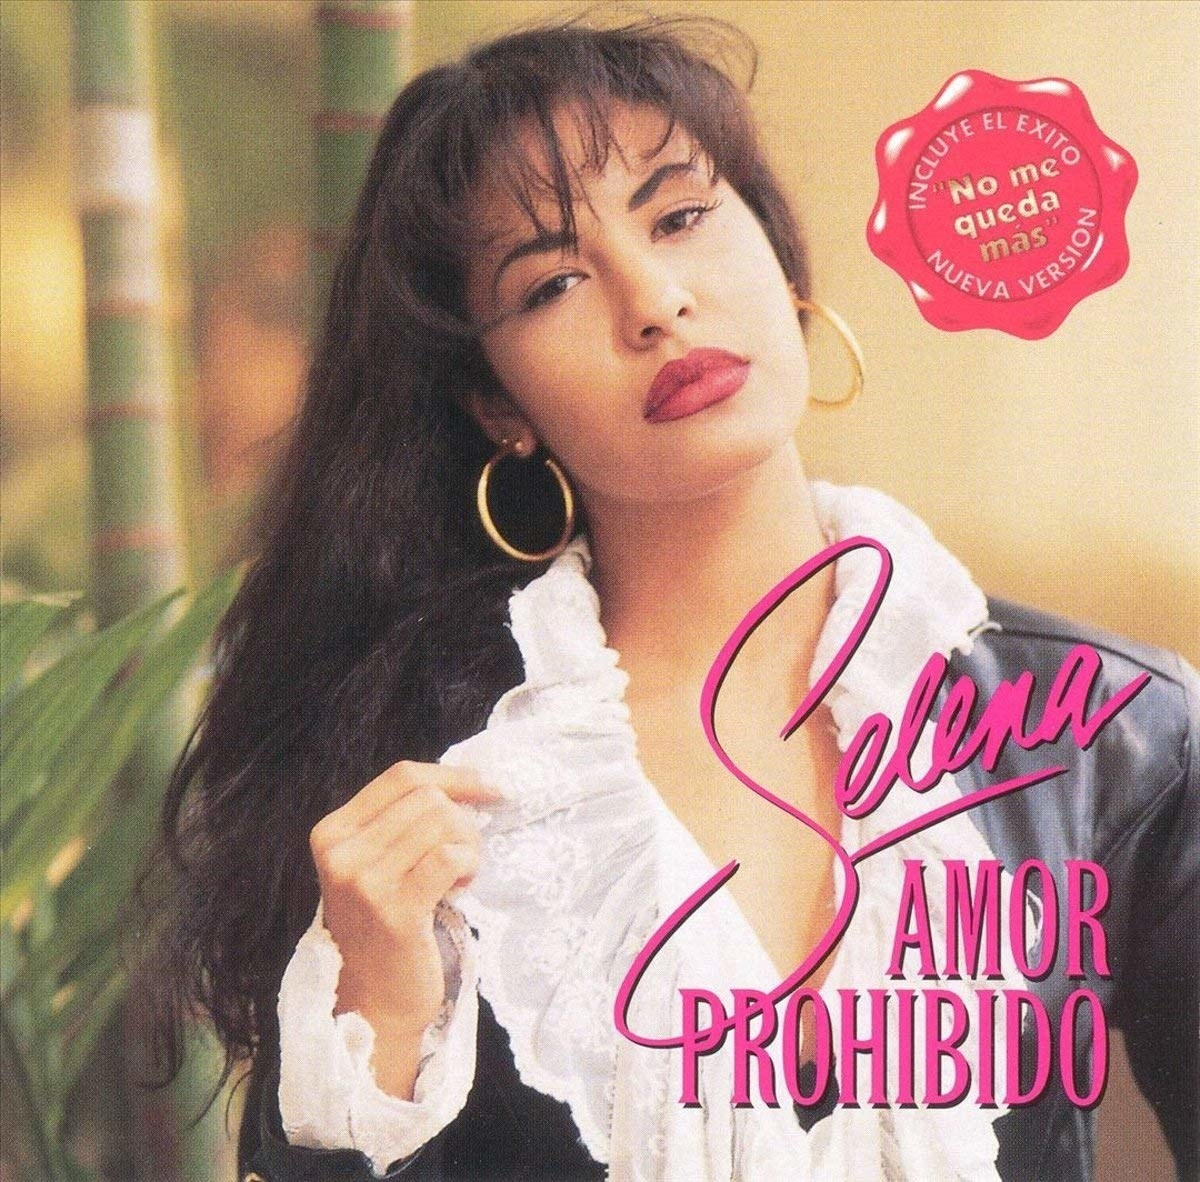 The classic cover of Selena's Amor Prohbido album which features her titling her head to the side, while wearing hoop earnings, a ruffled collar blouse, and black leather jacket